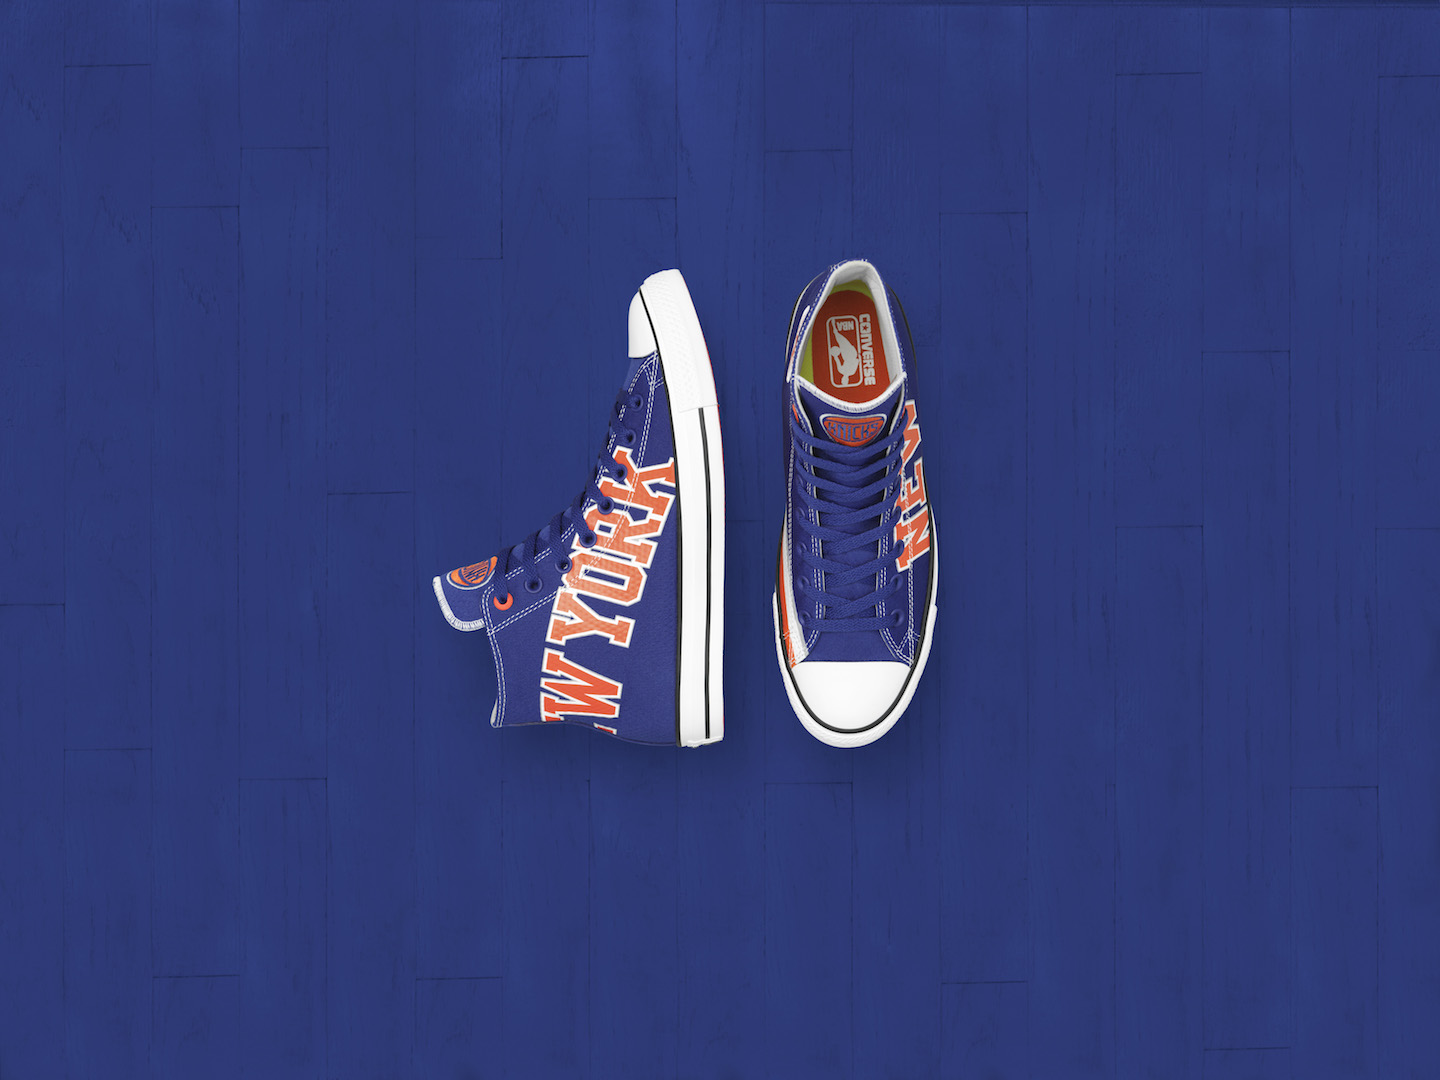 HO17_NBA_CTAS_SE_FRANCHISE_NY_KNICKS_159423C_TOPDOWN_w3_RGB - Copy